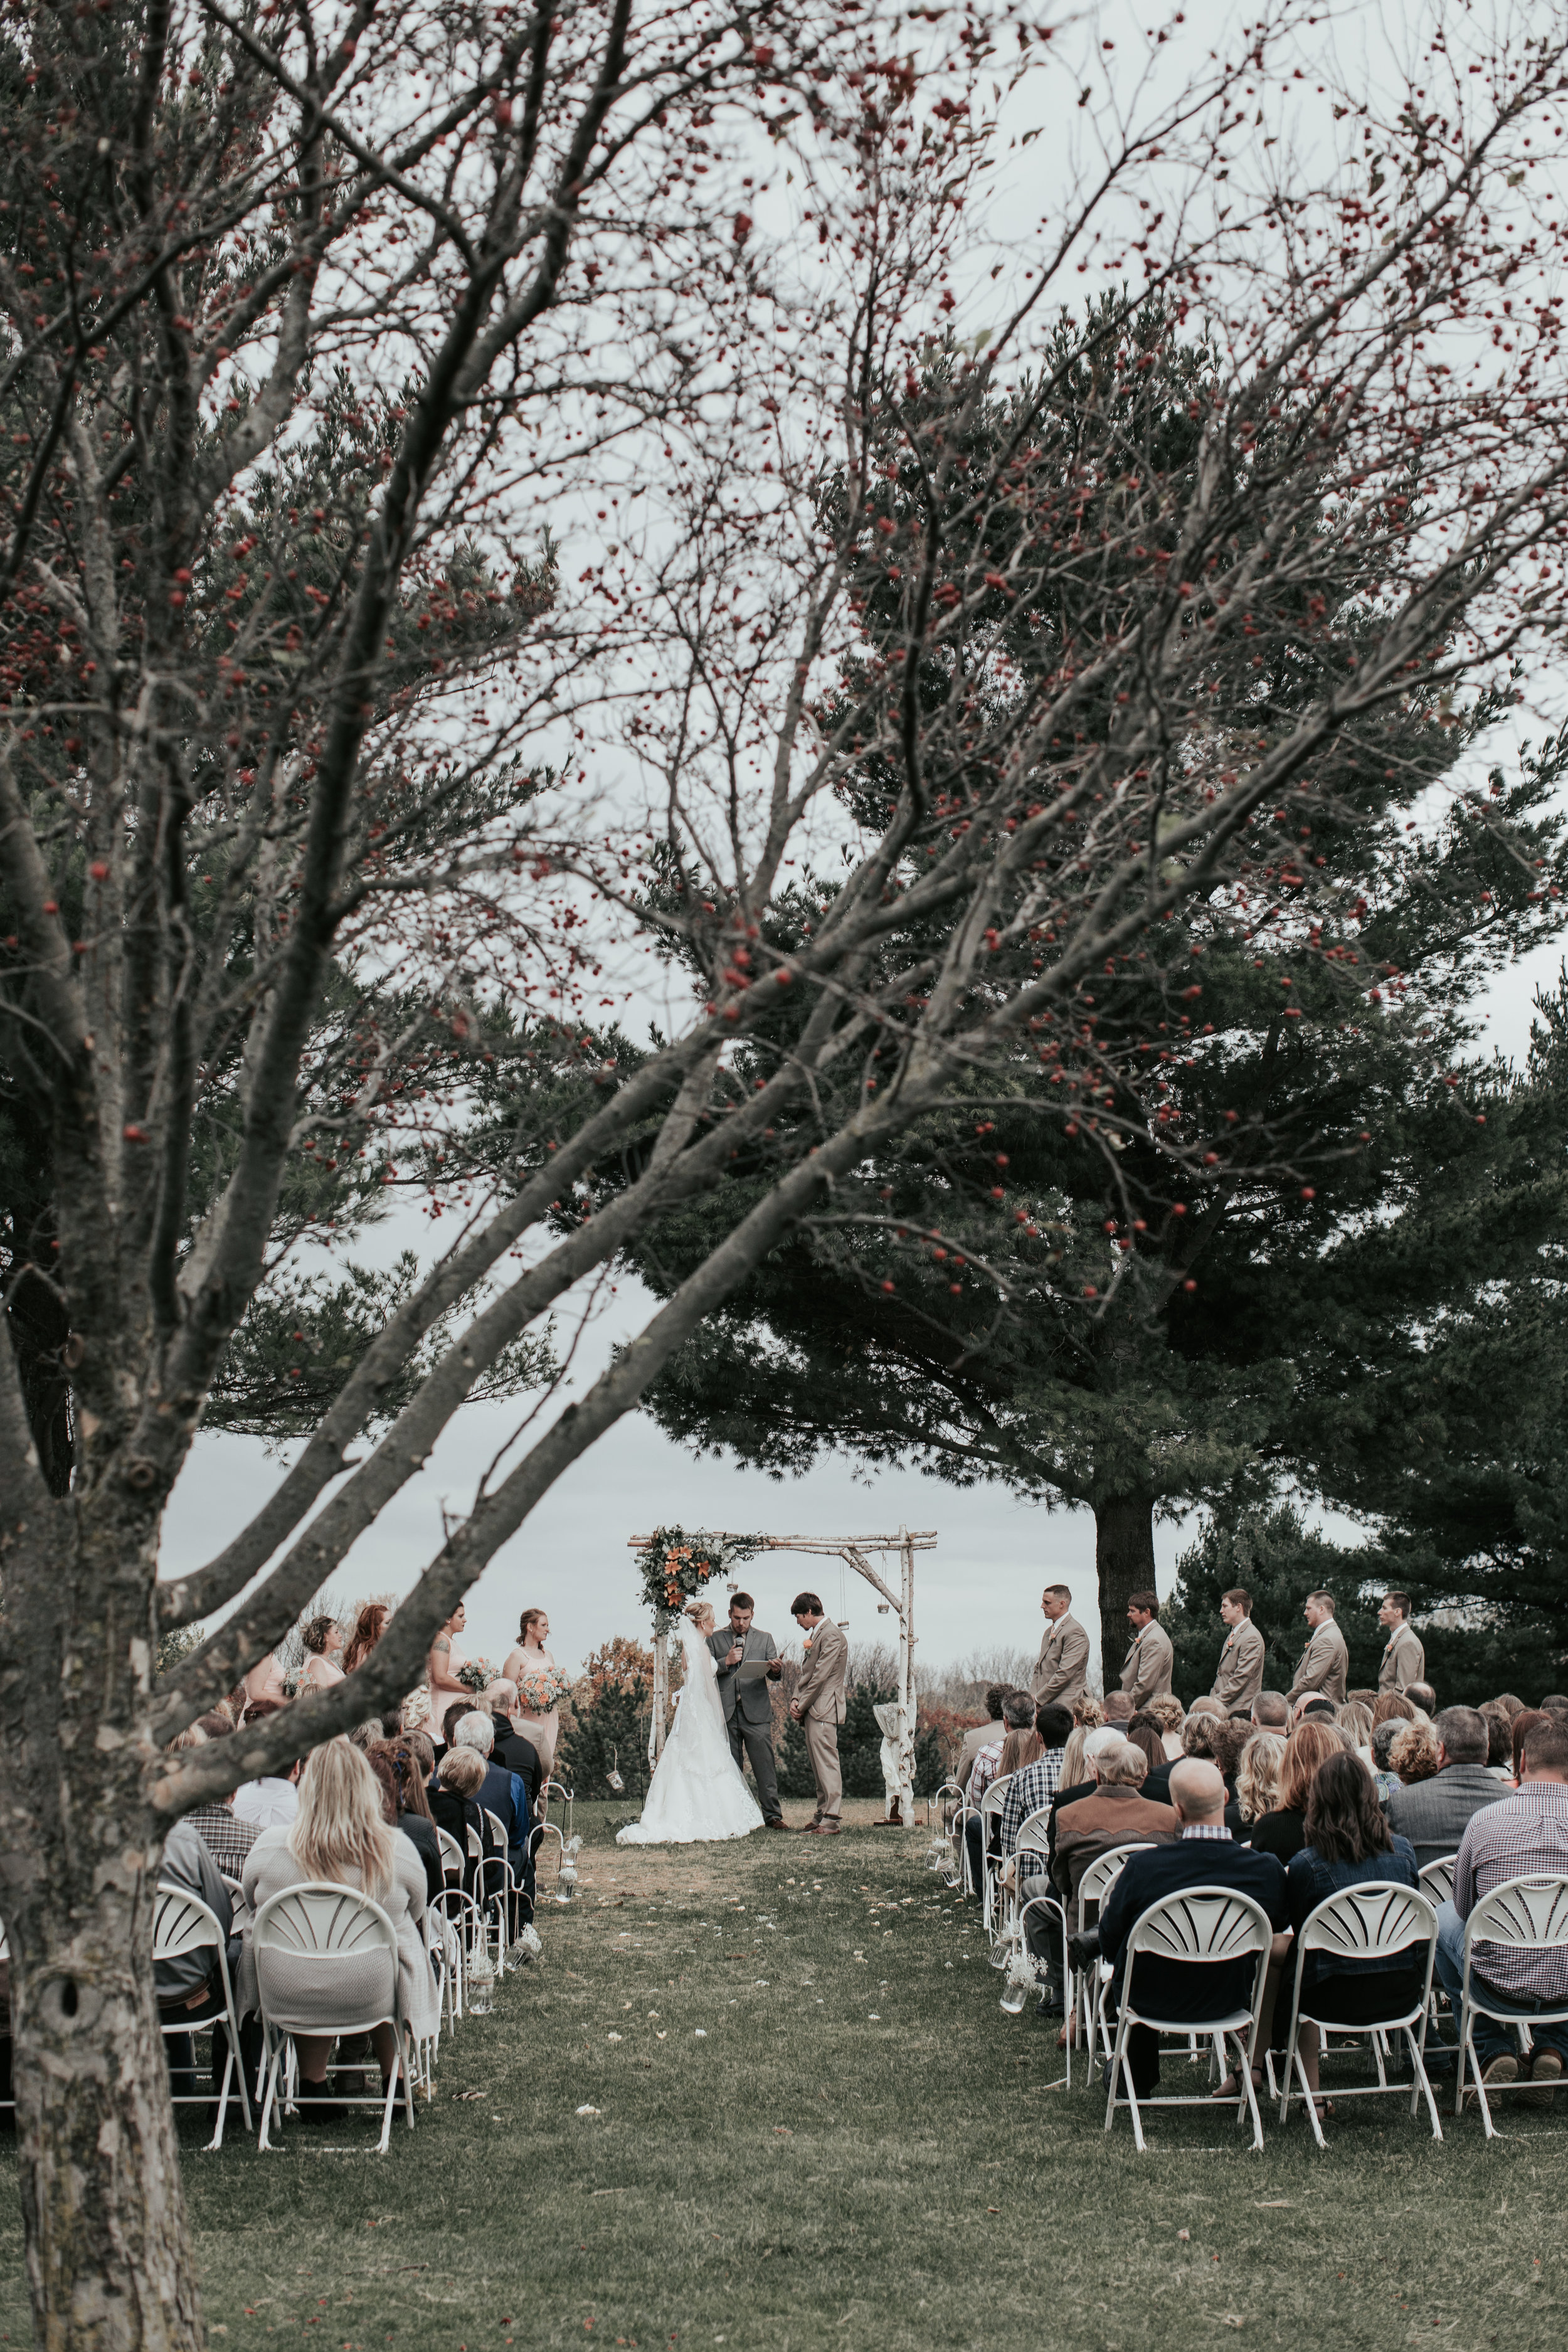 Ceremony - Hove Photography LLC - Destination Wedding Photographer